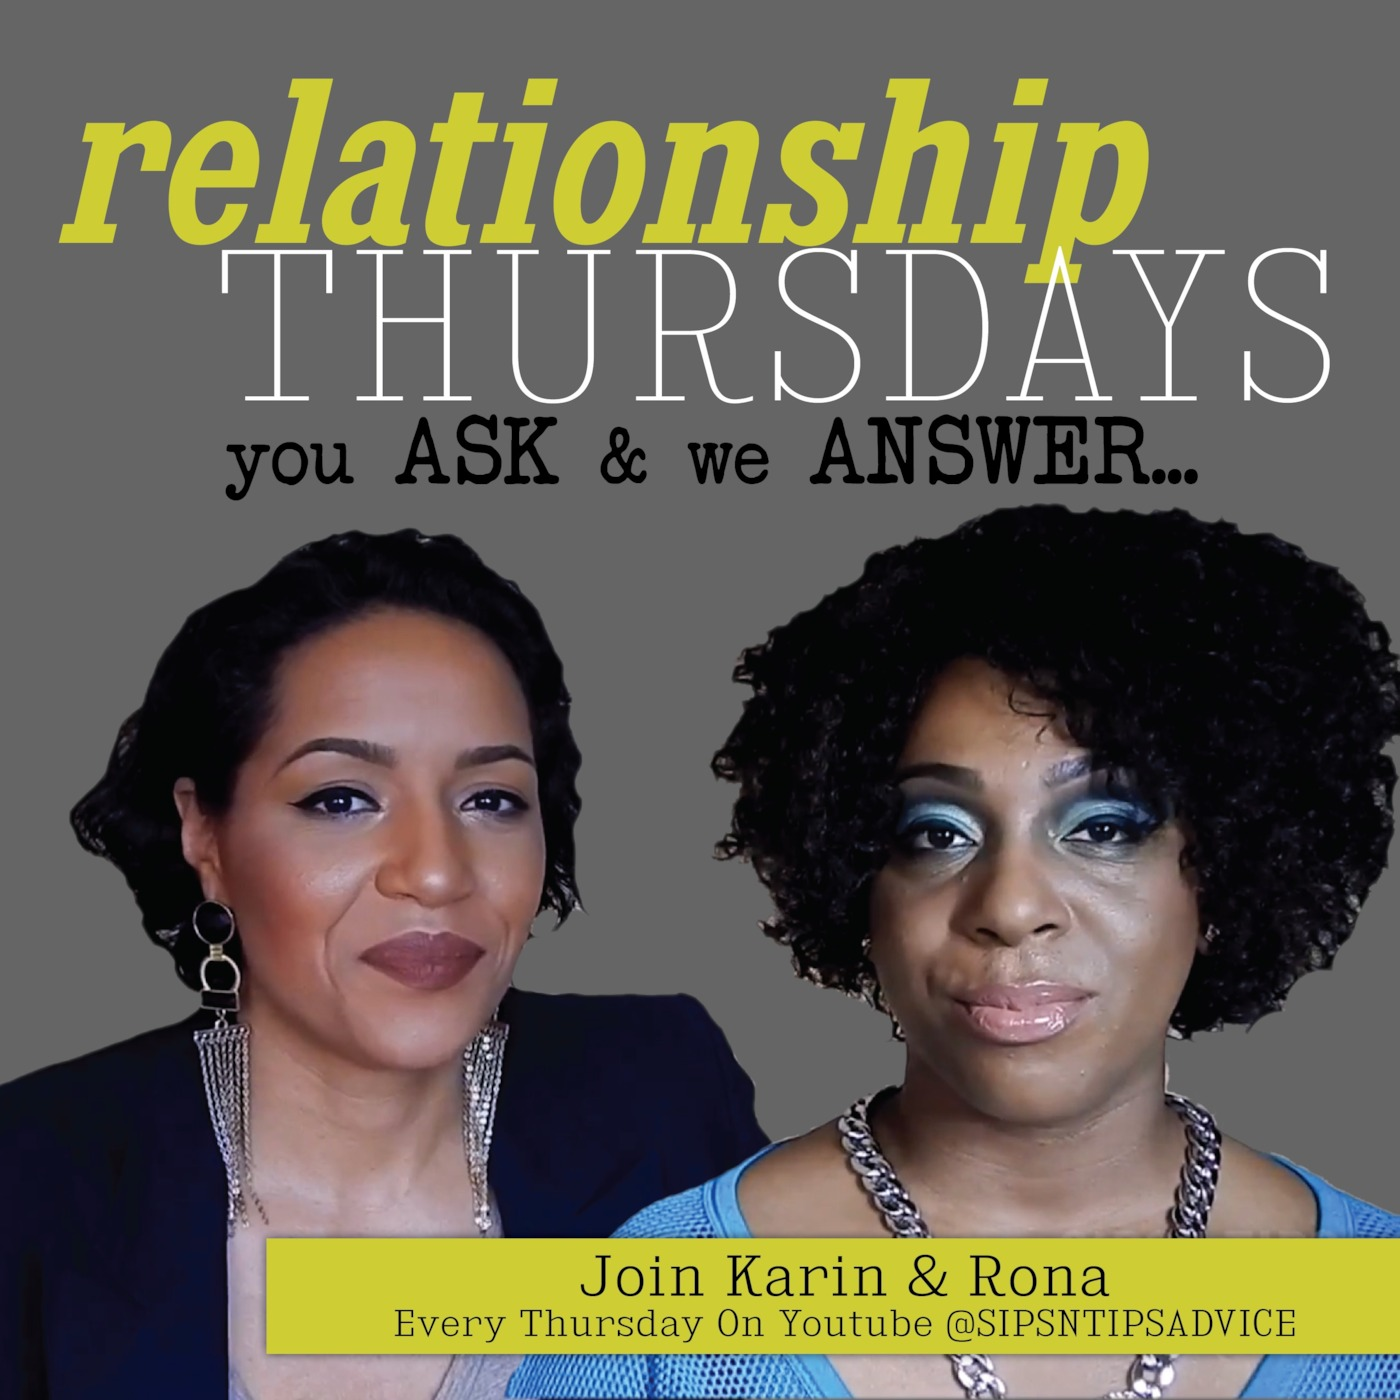 Relationship Thursdays - Dating Family & Friendship Advice for Men & Women